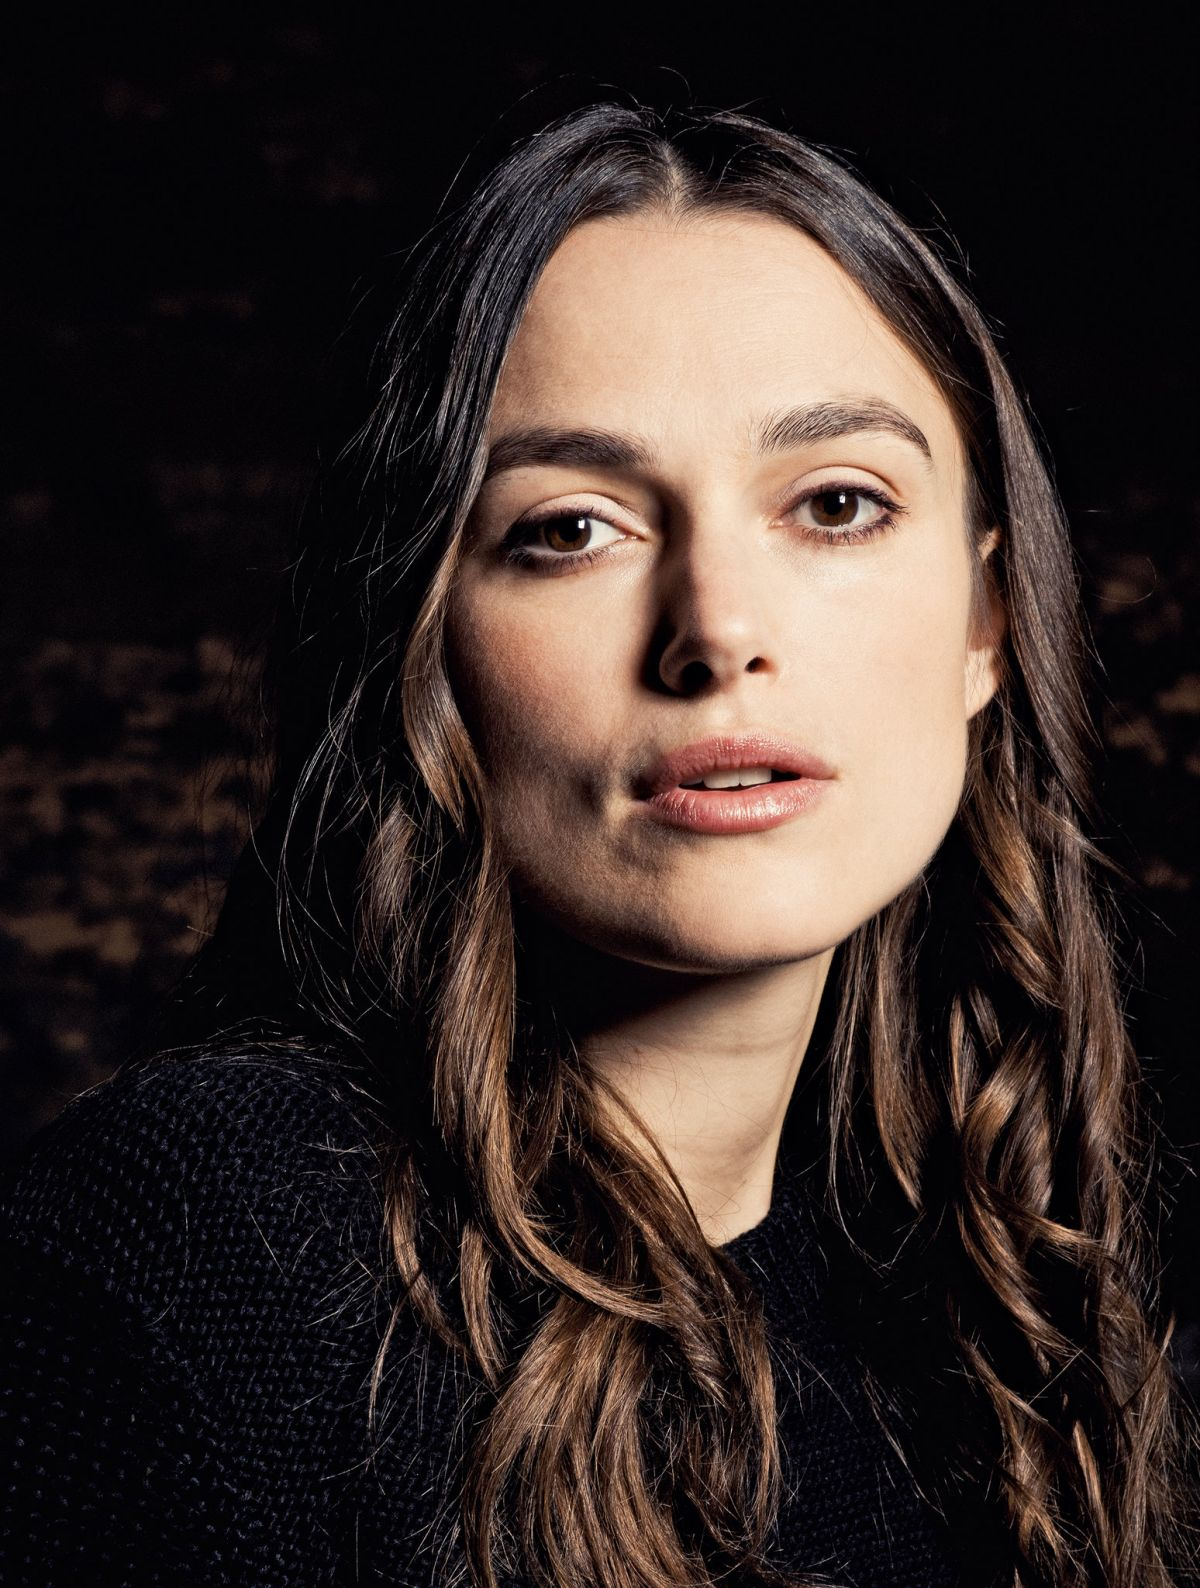 KEIRA KNIGHTLEY by Ryan Pfluger for The New York Times